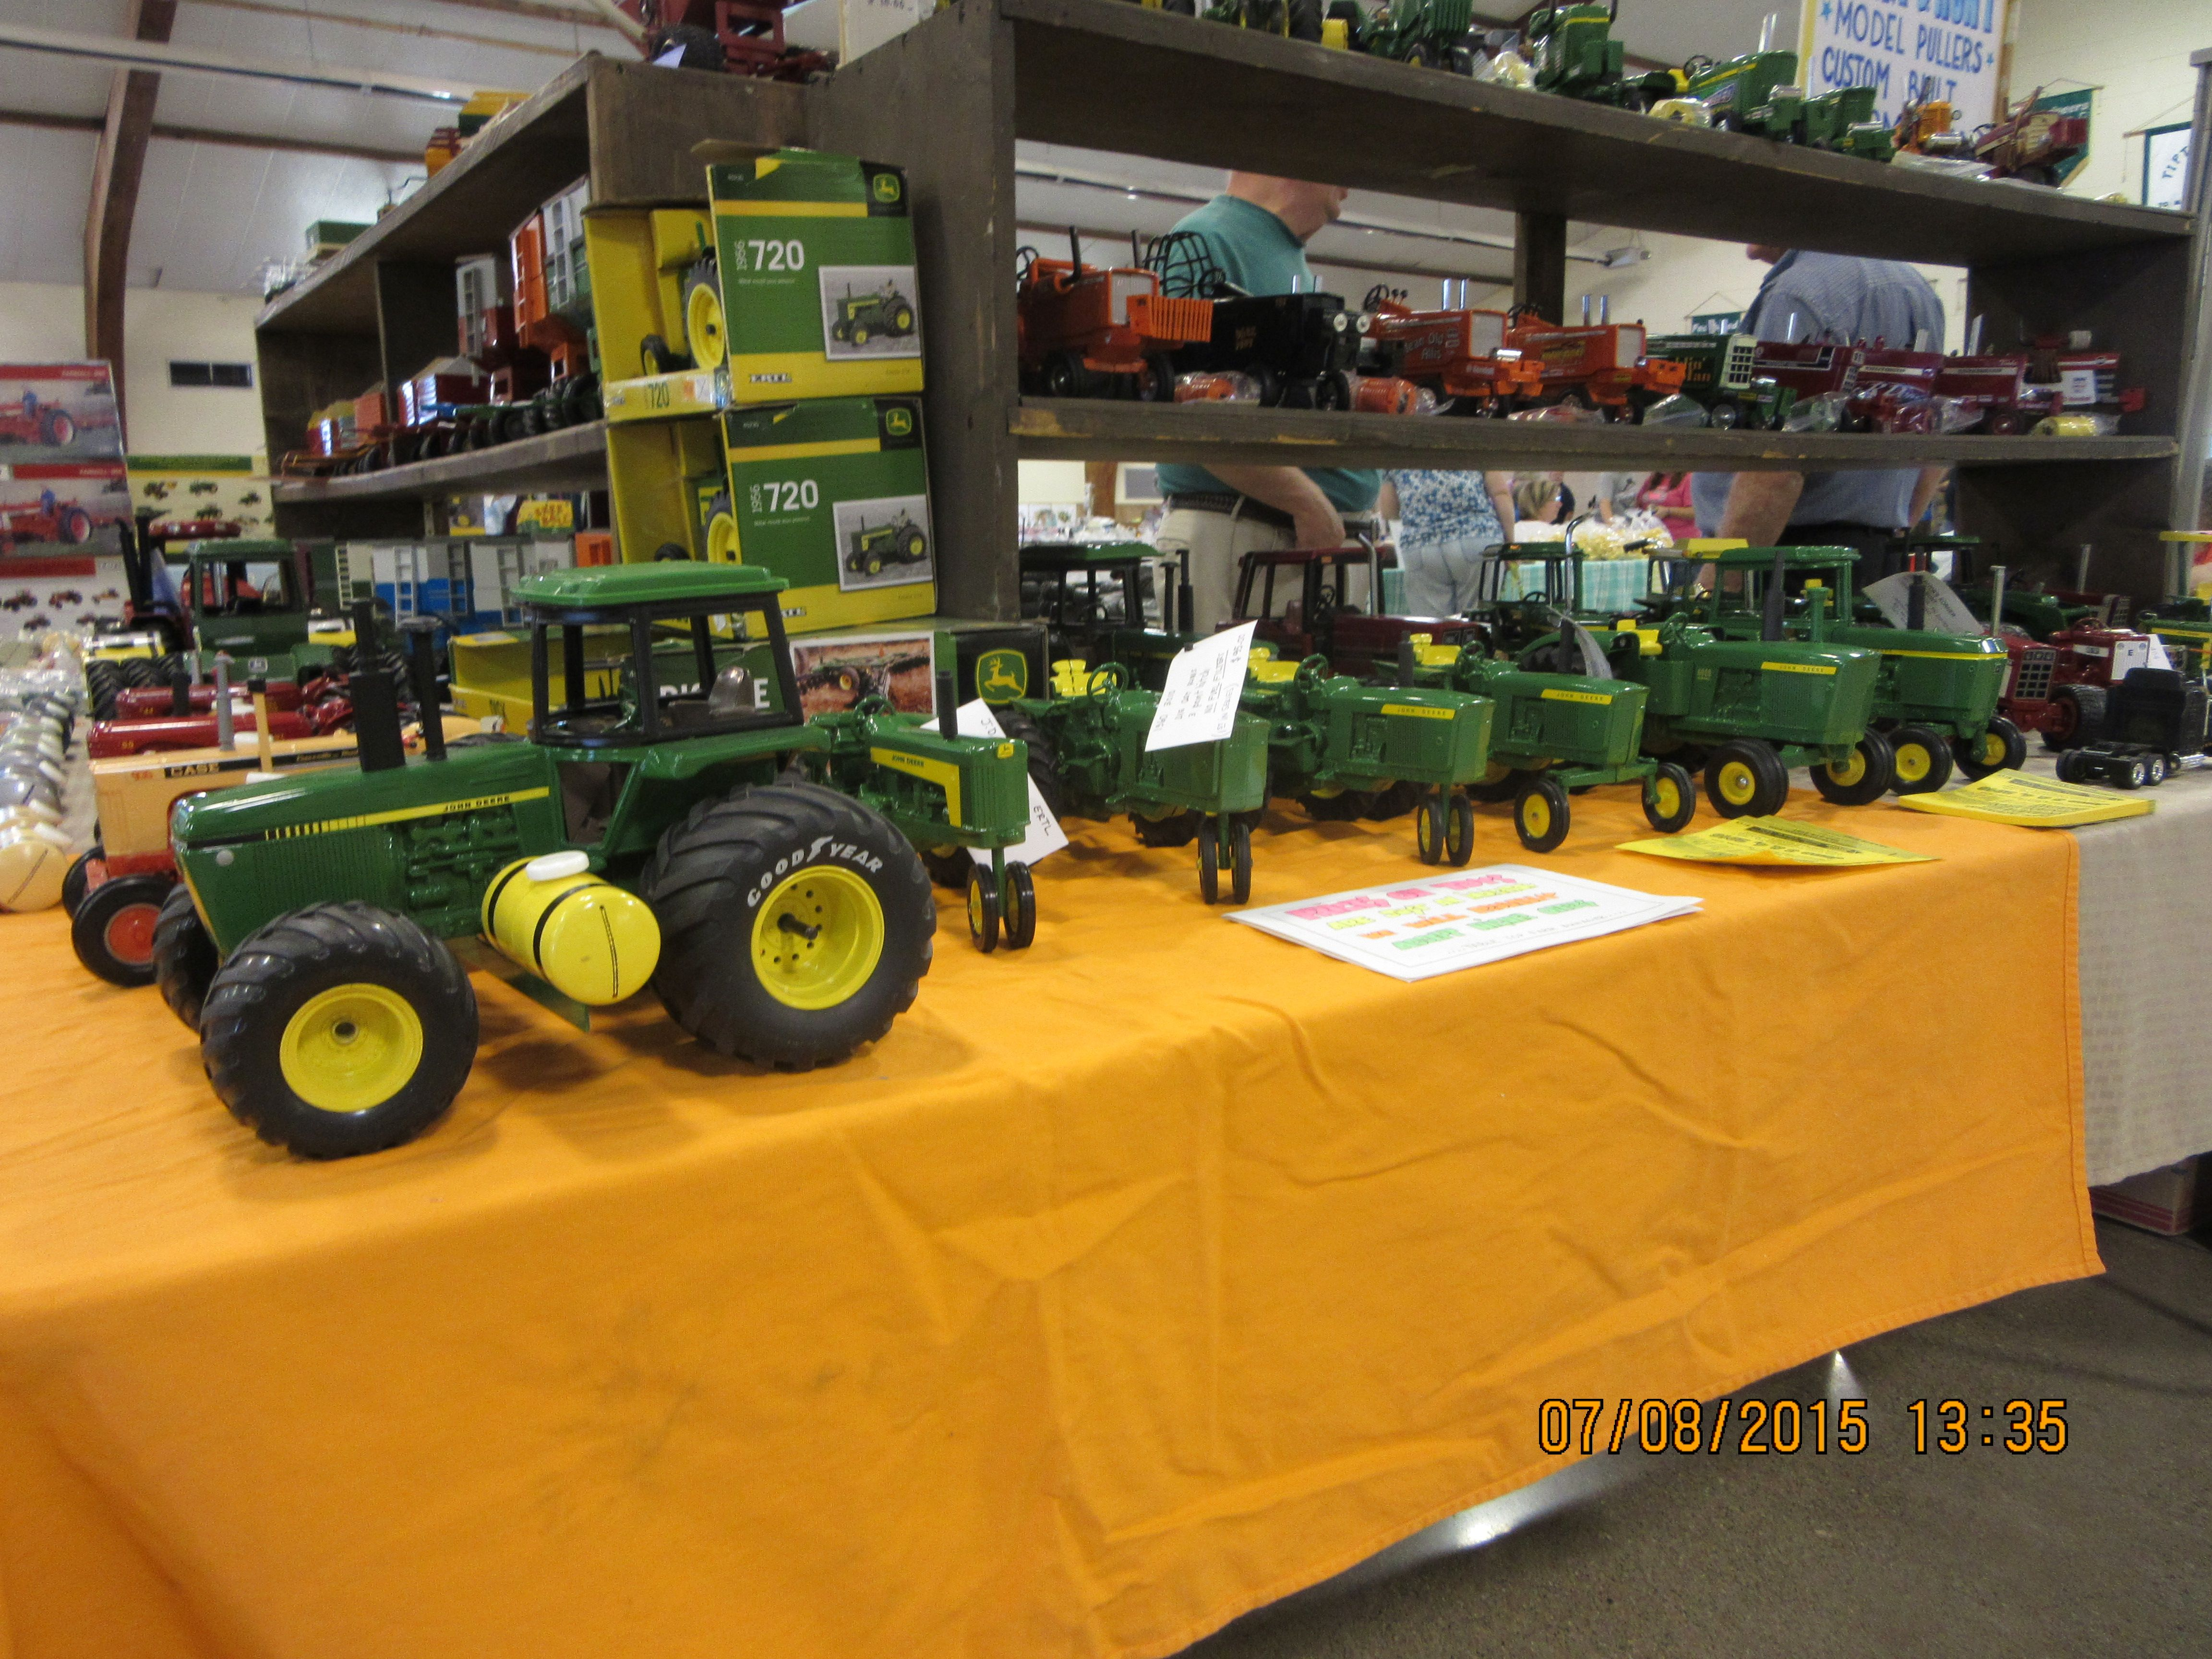 Toy Tractors For Sale >> Many 1 16th John Deere Toy Tractors For Sale Farm Construction